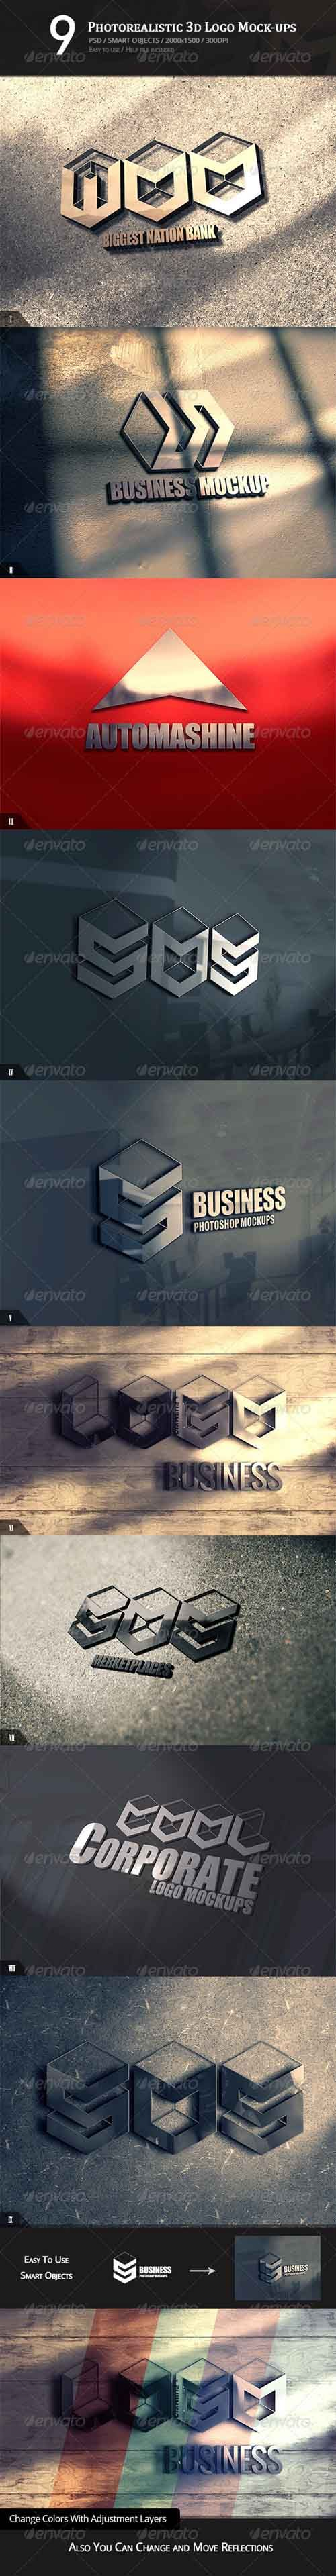 9 Photorealistic 3D Logo Mock-ups PSD » Free Hero Graphic Design: Vectors AEP Projects PSD Sources Web Templates – HeroGFX.com